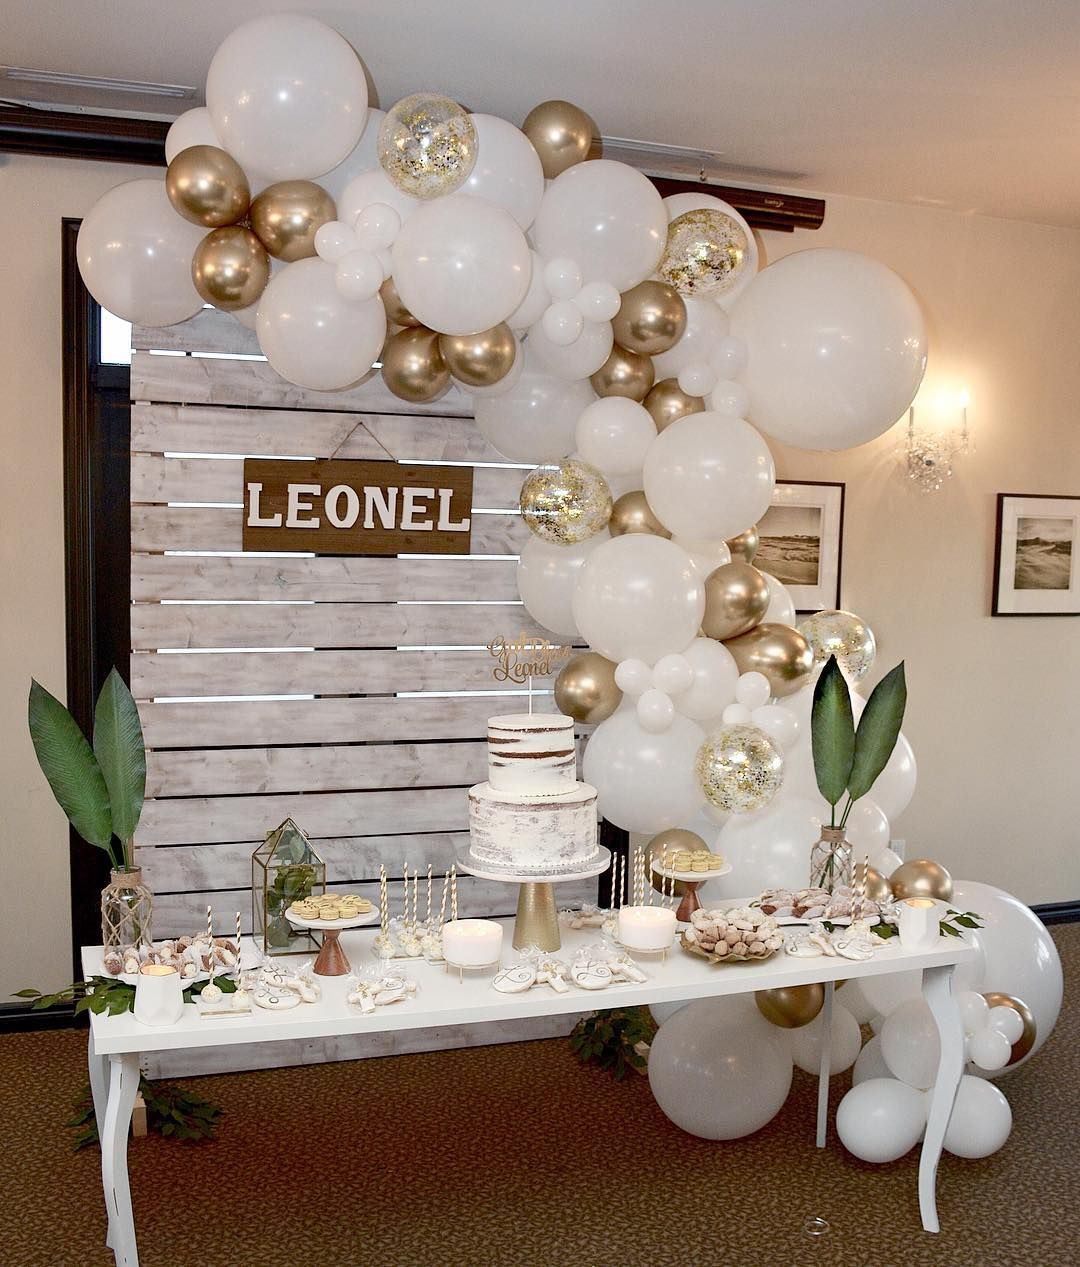 Balloons kids party ideas kidsparty decoration weballoonz on instagram also best claudette th birthday images in rh pinterest